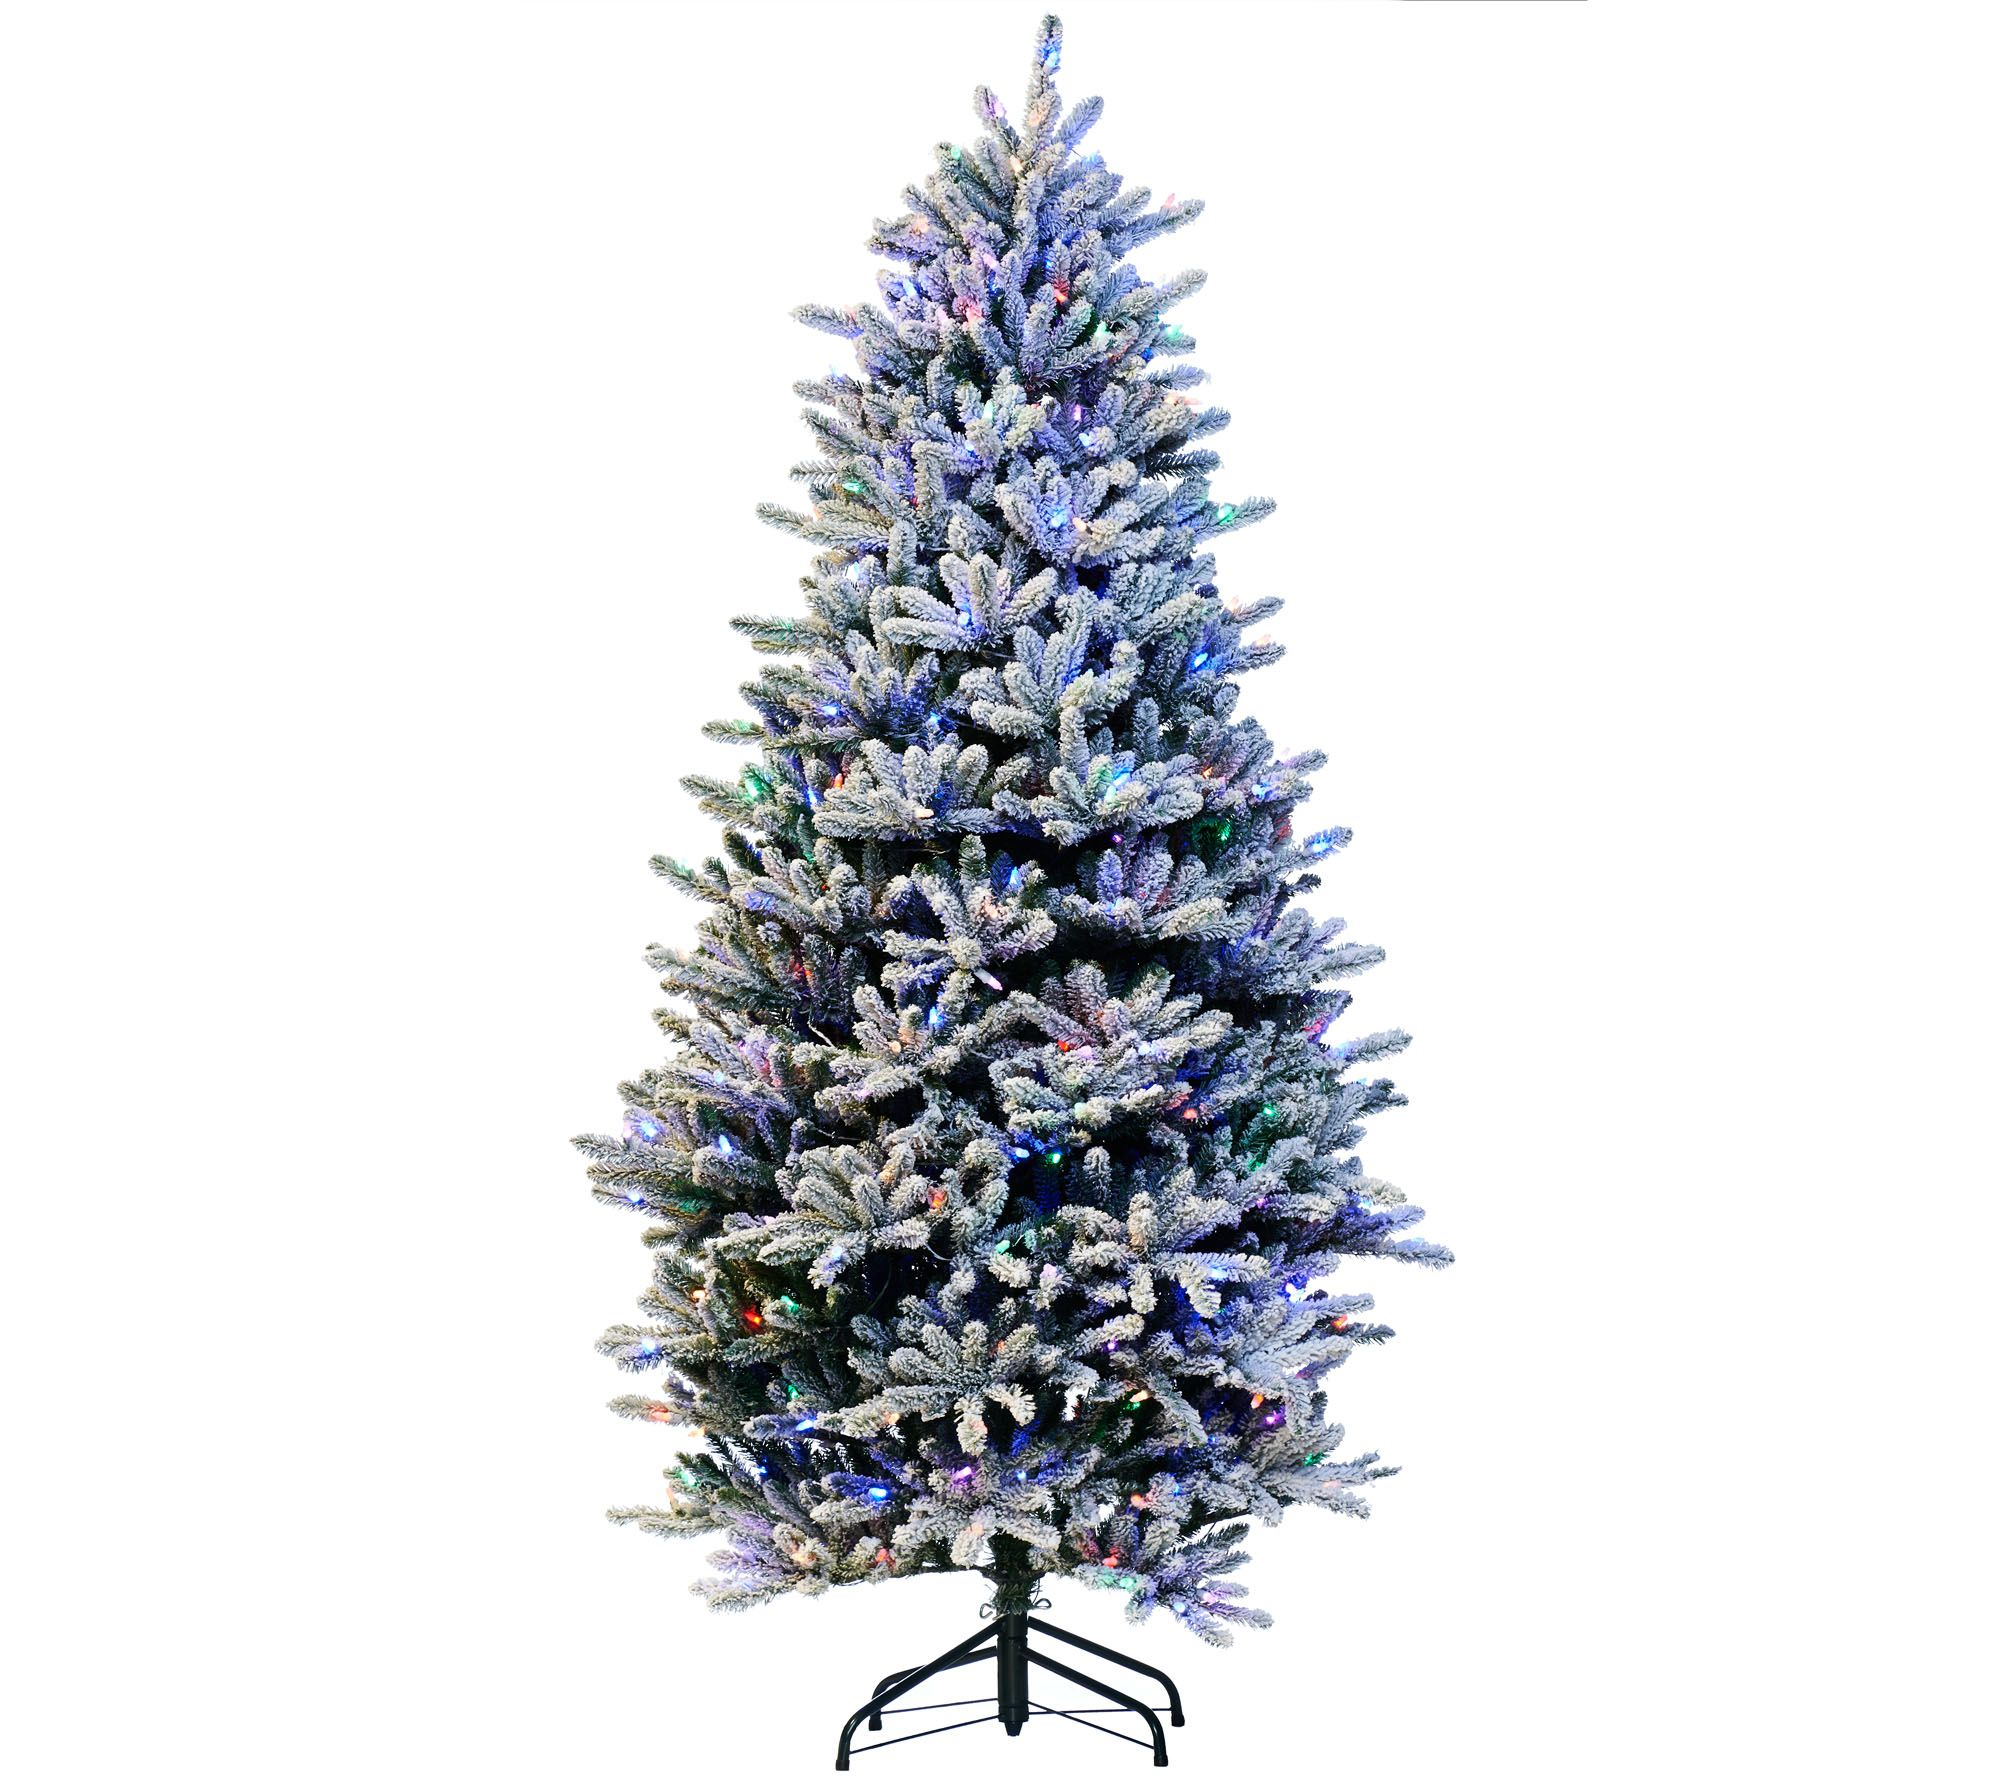 Santas Best Christmas Trees.Santa S Best 6 5 Rgb 2 0 Flocked Balsam Fir Christmas Tree Qvc Com